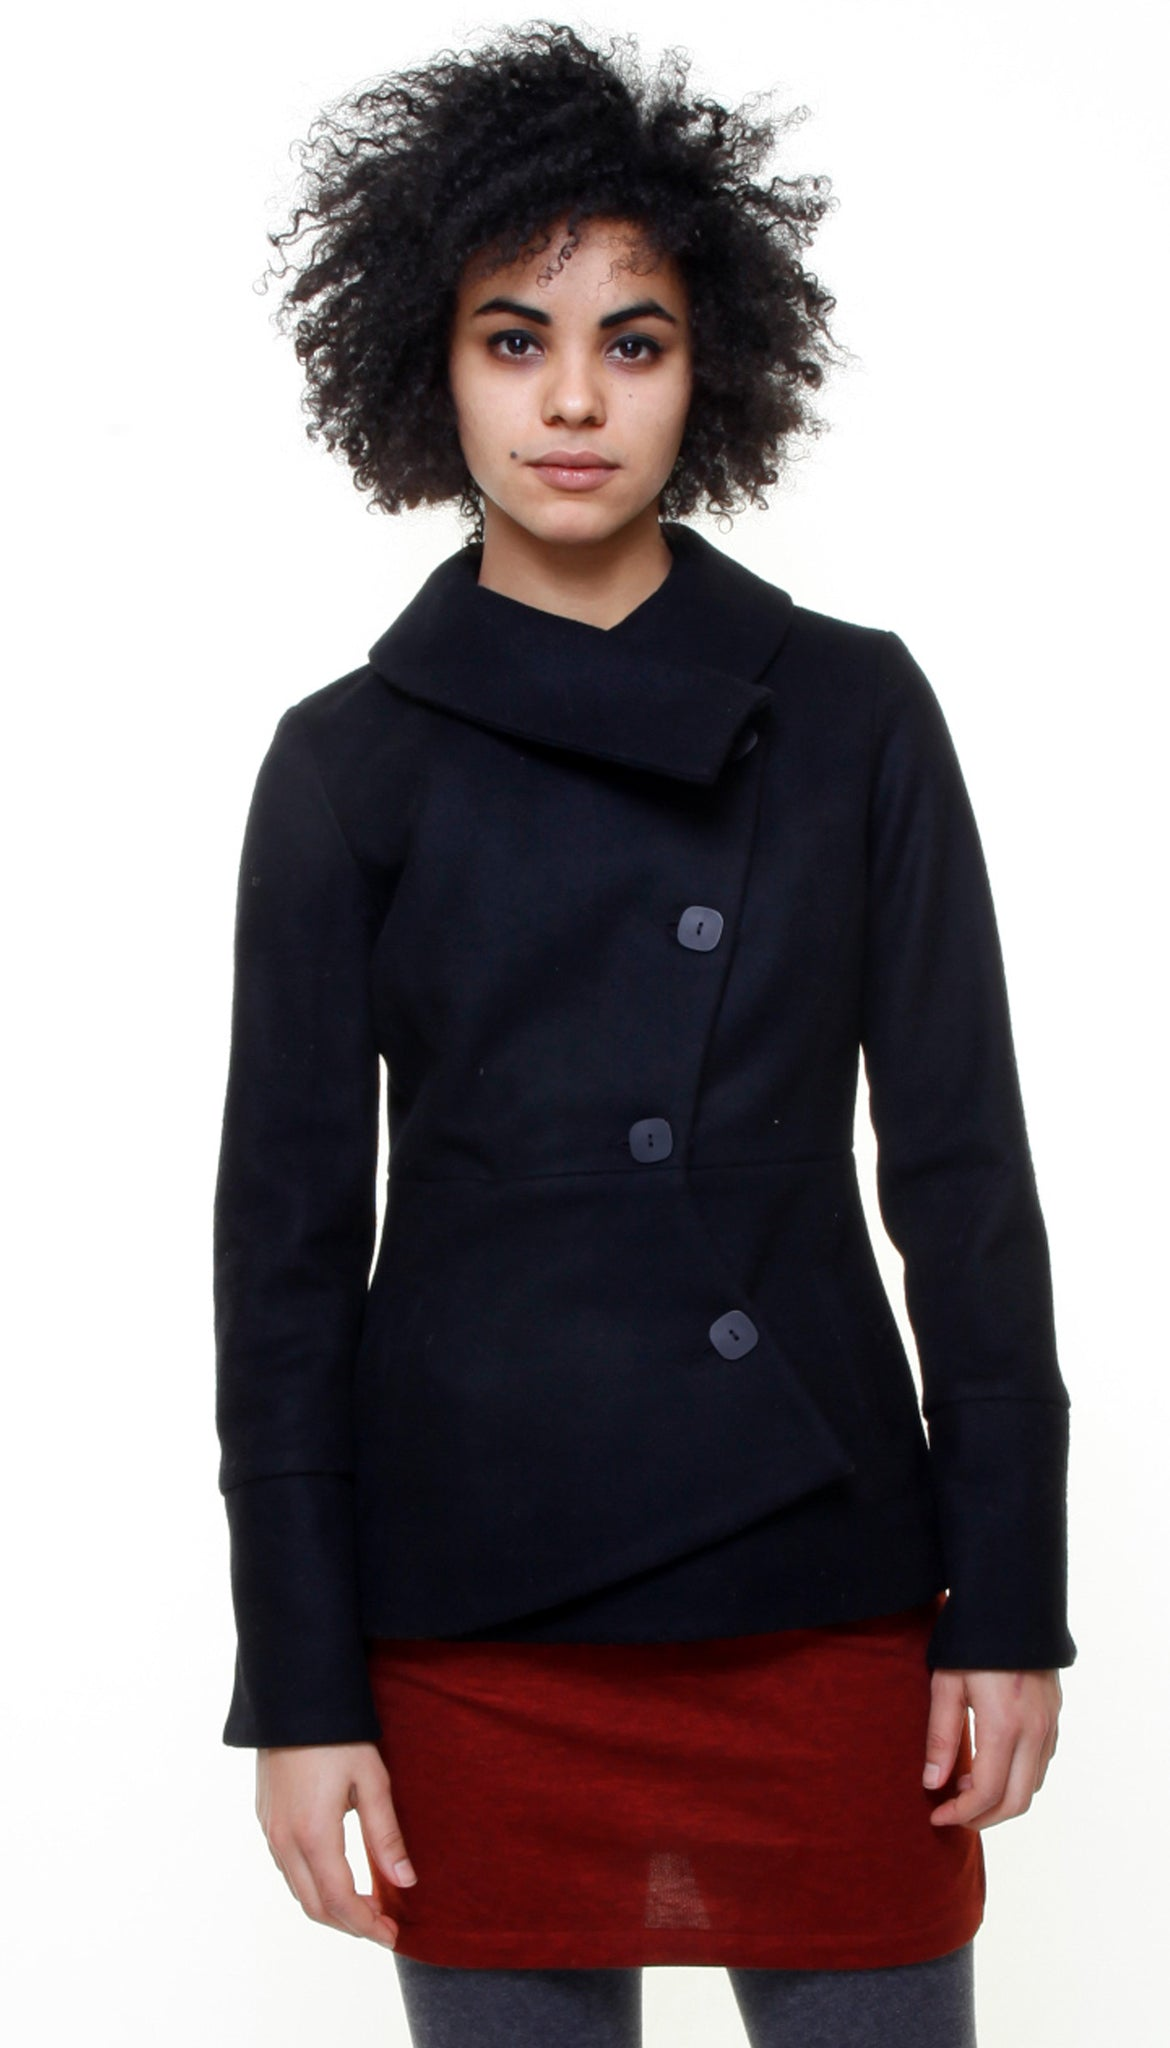 Short Swerve Coat/ Charcoal/Black Twill Texture